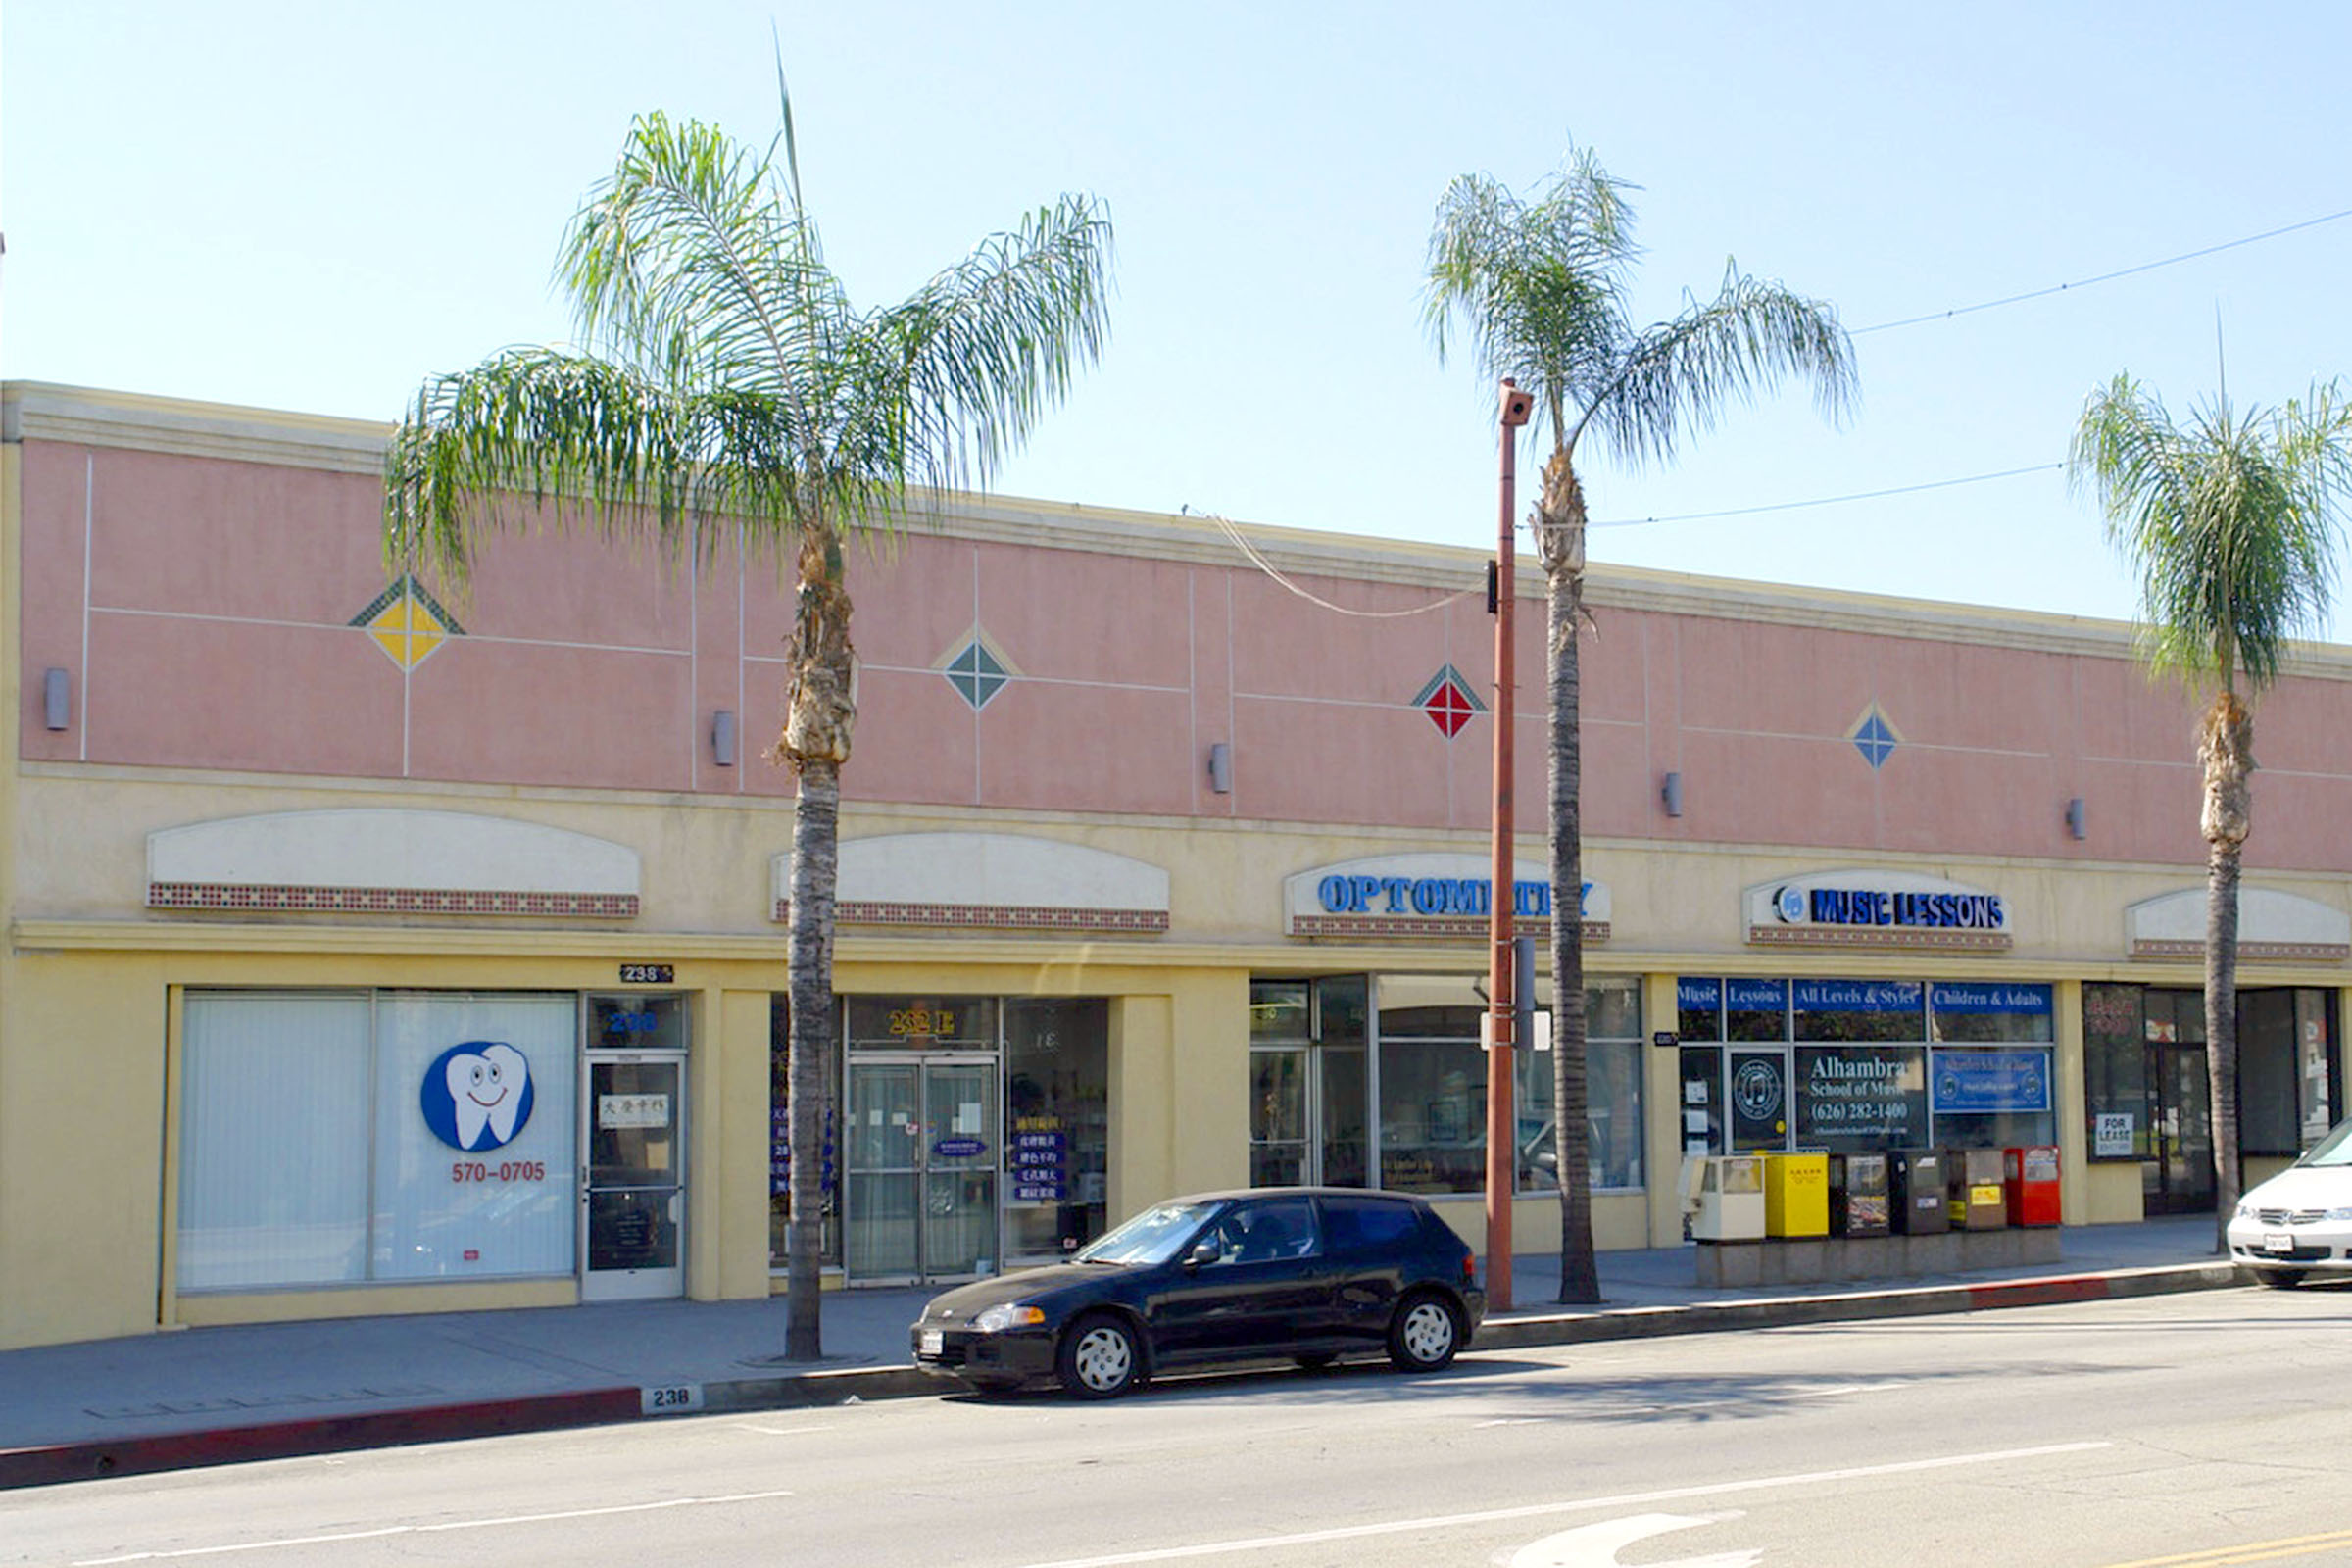 232 E Main St, Alhambra | LEASED